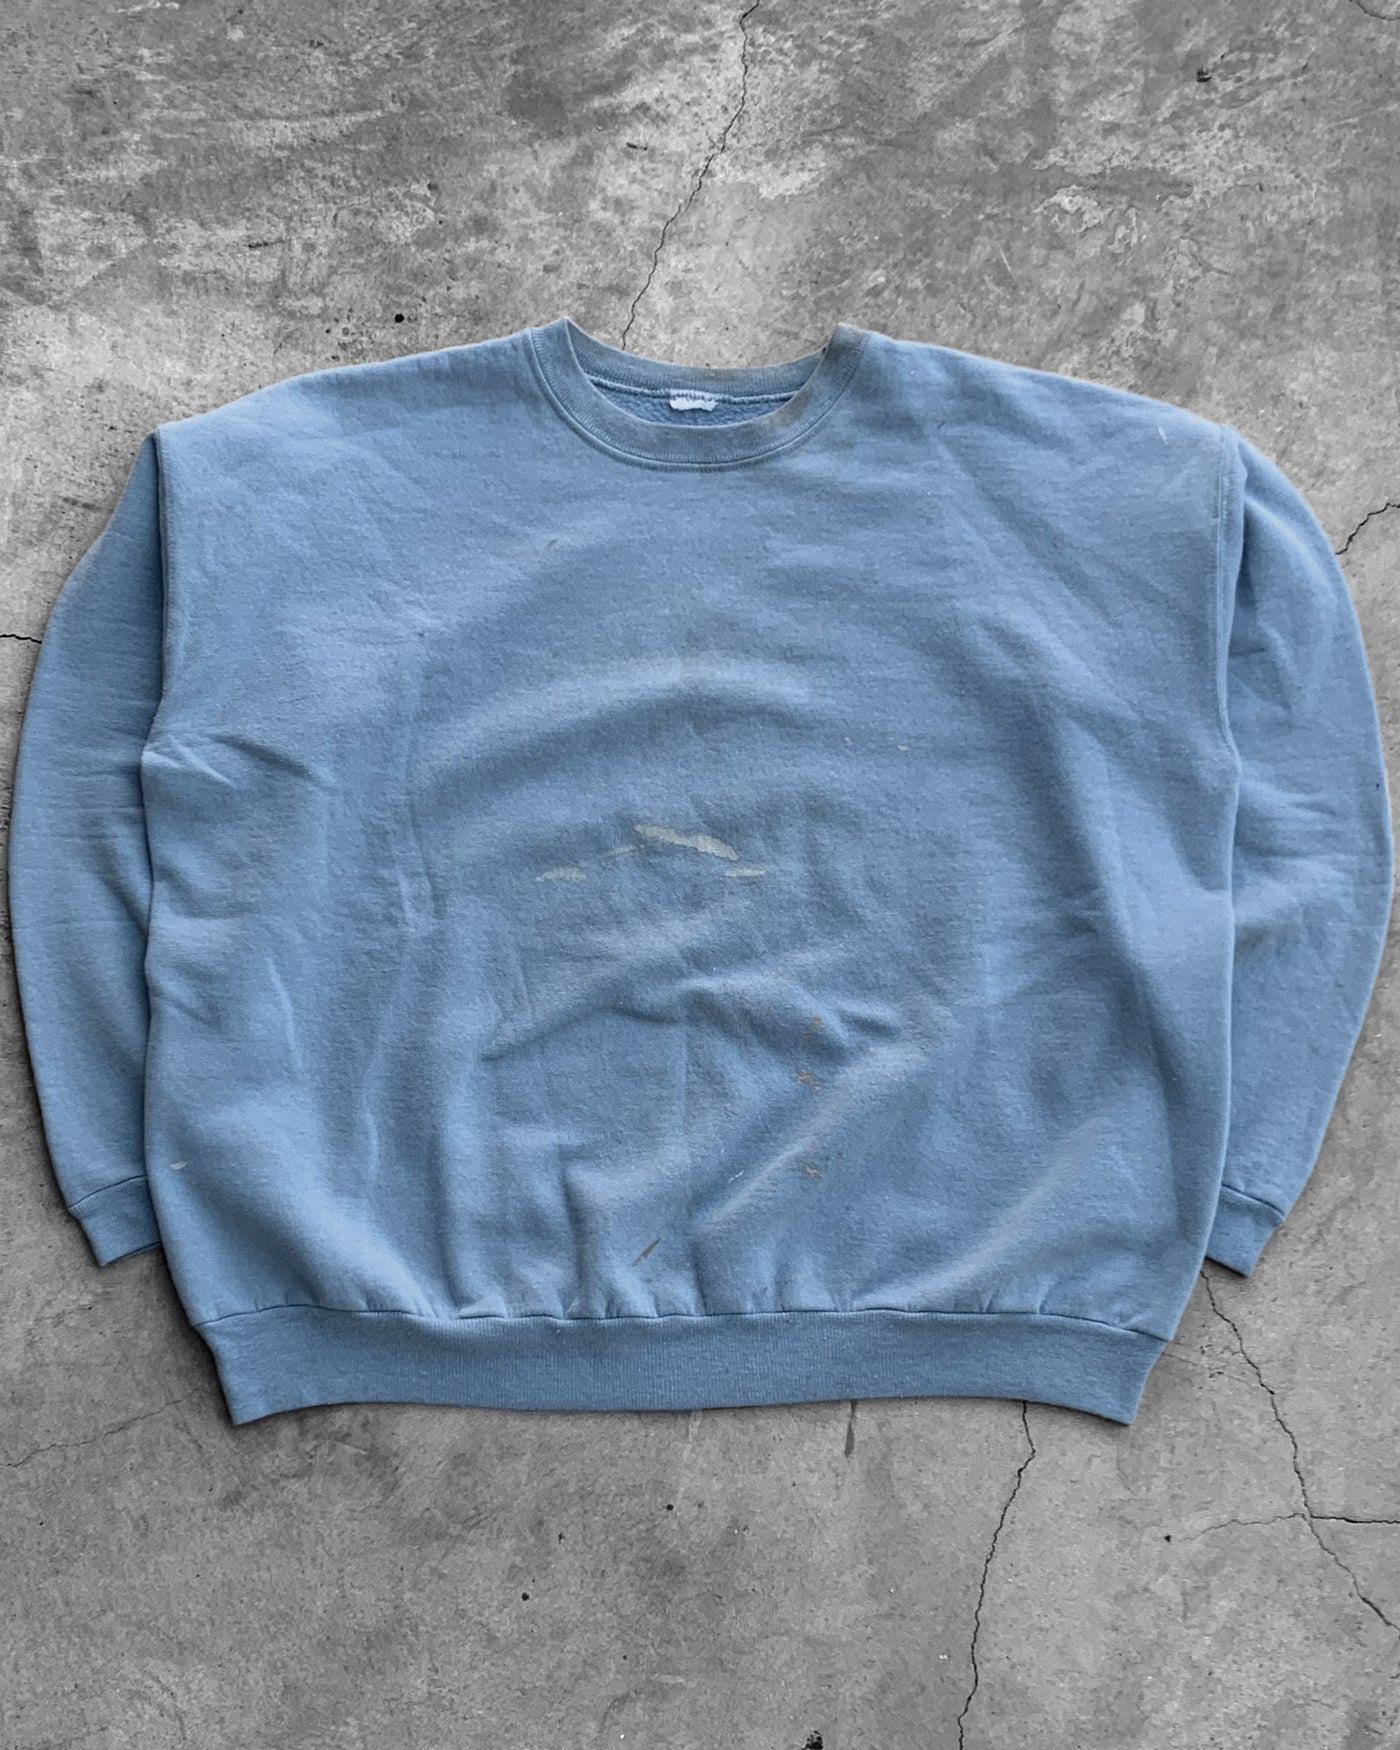 Sky Blue Painted Sweatshirt - 1980s